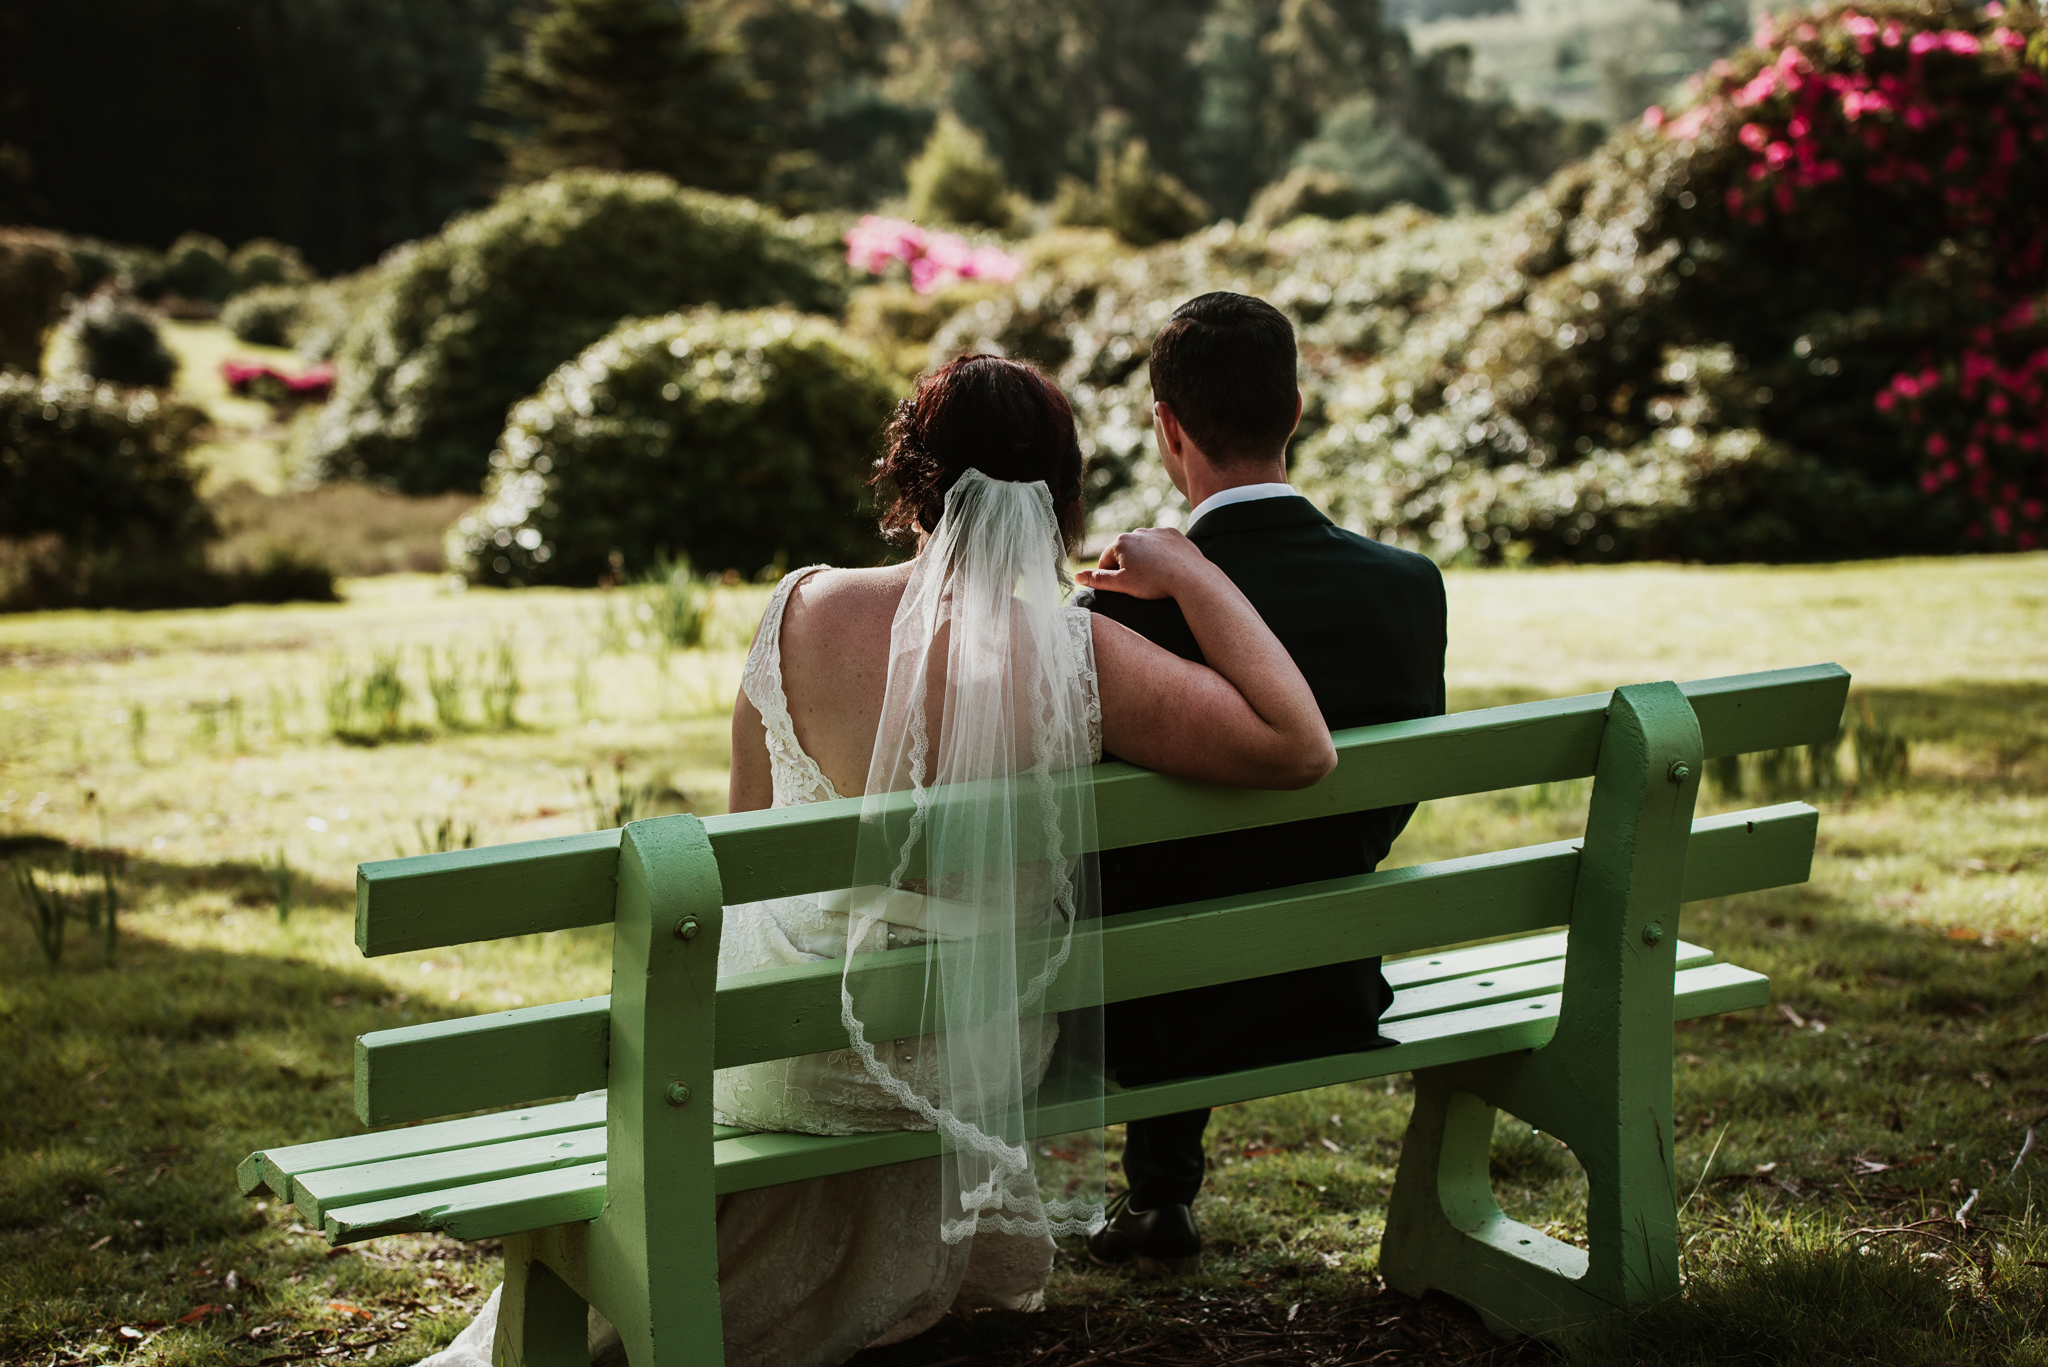 launceston wedding photography-75.jpg